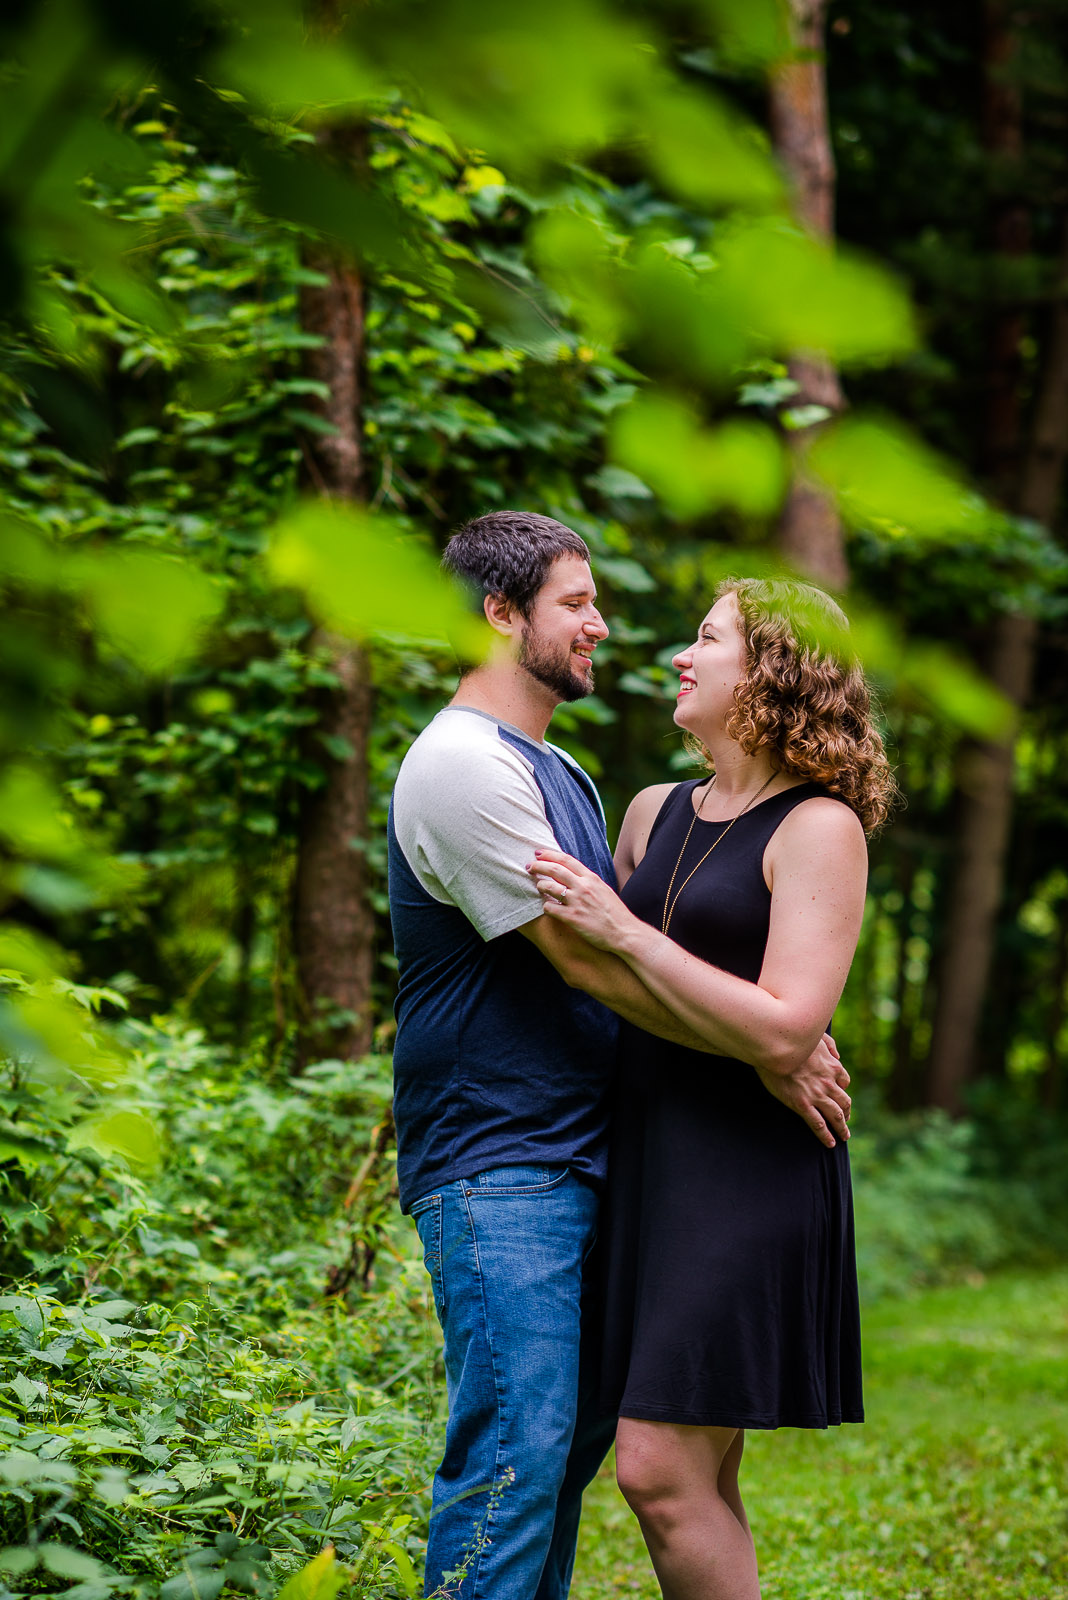 Eric_and_Christy_Photography_Blog_Engagement_Andrea_Clint-19